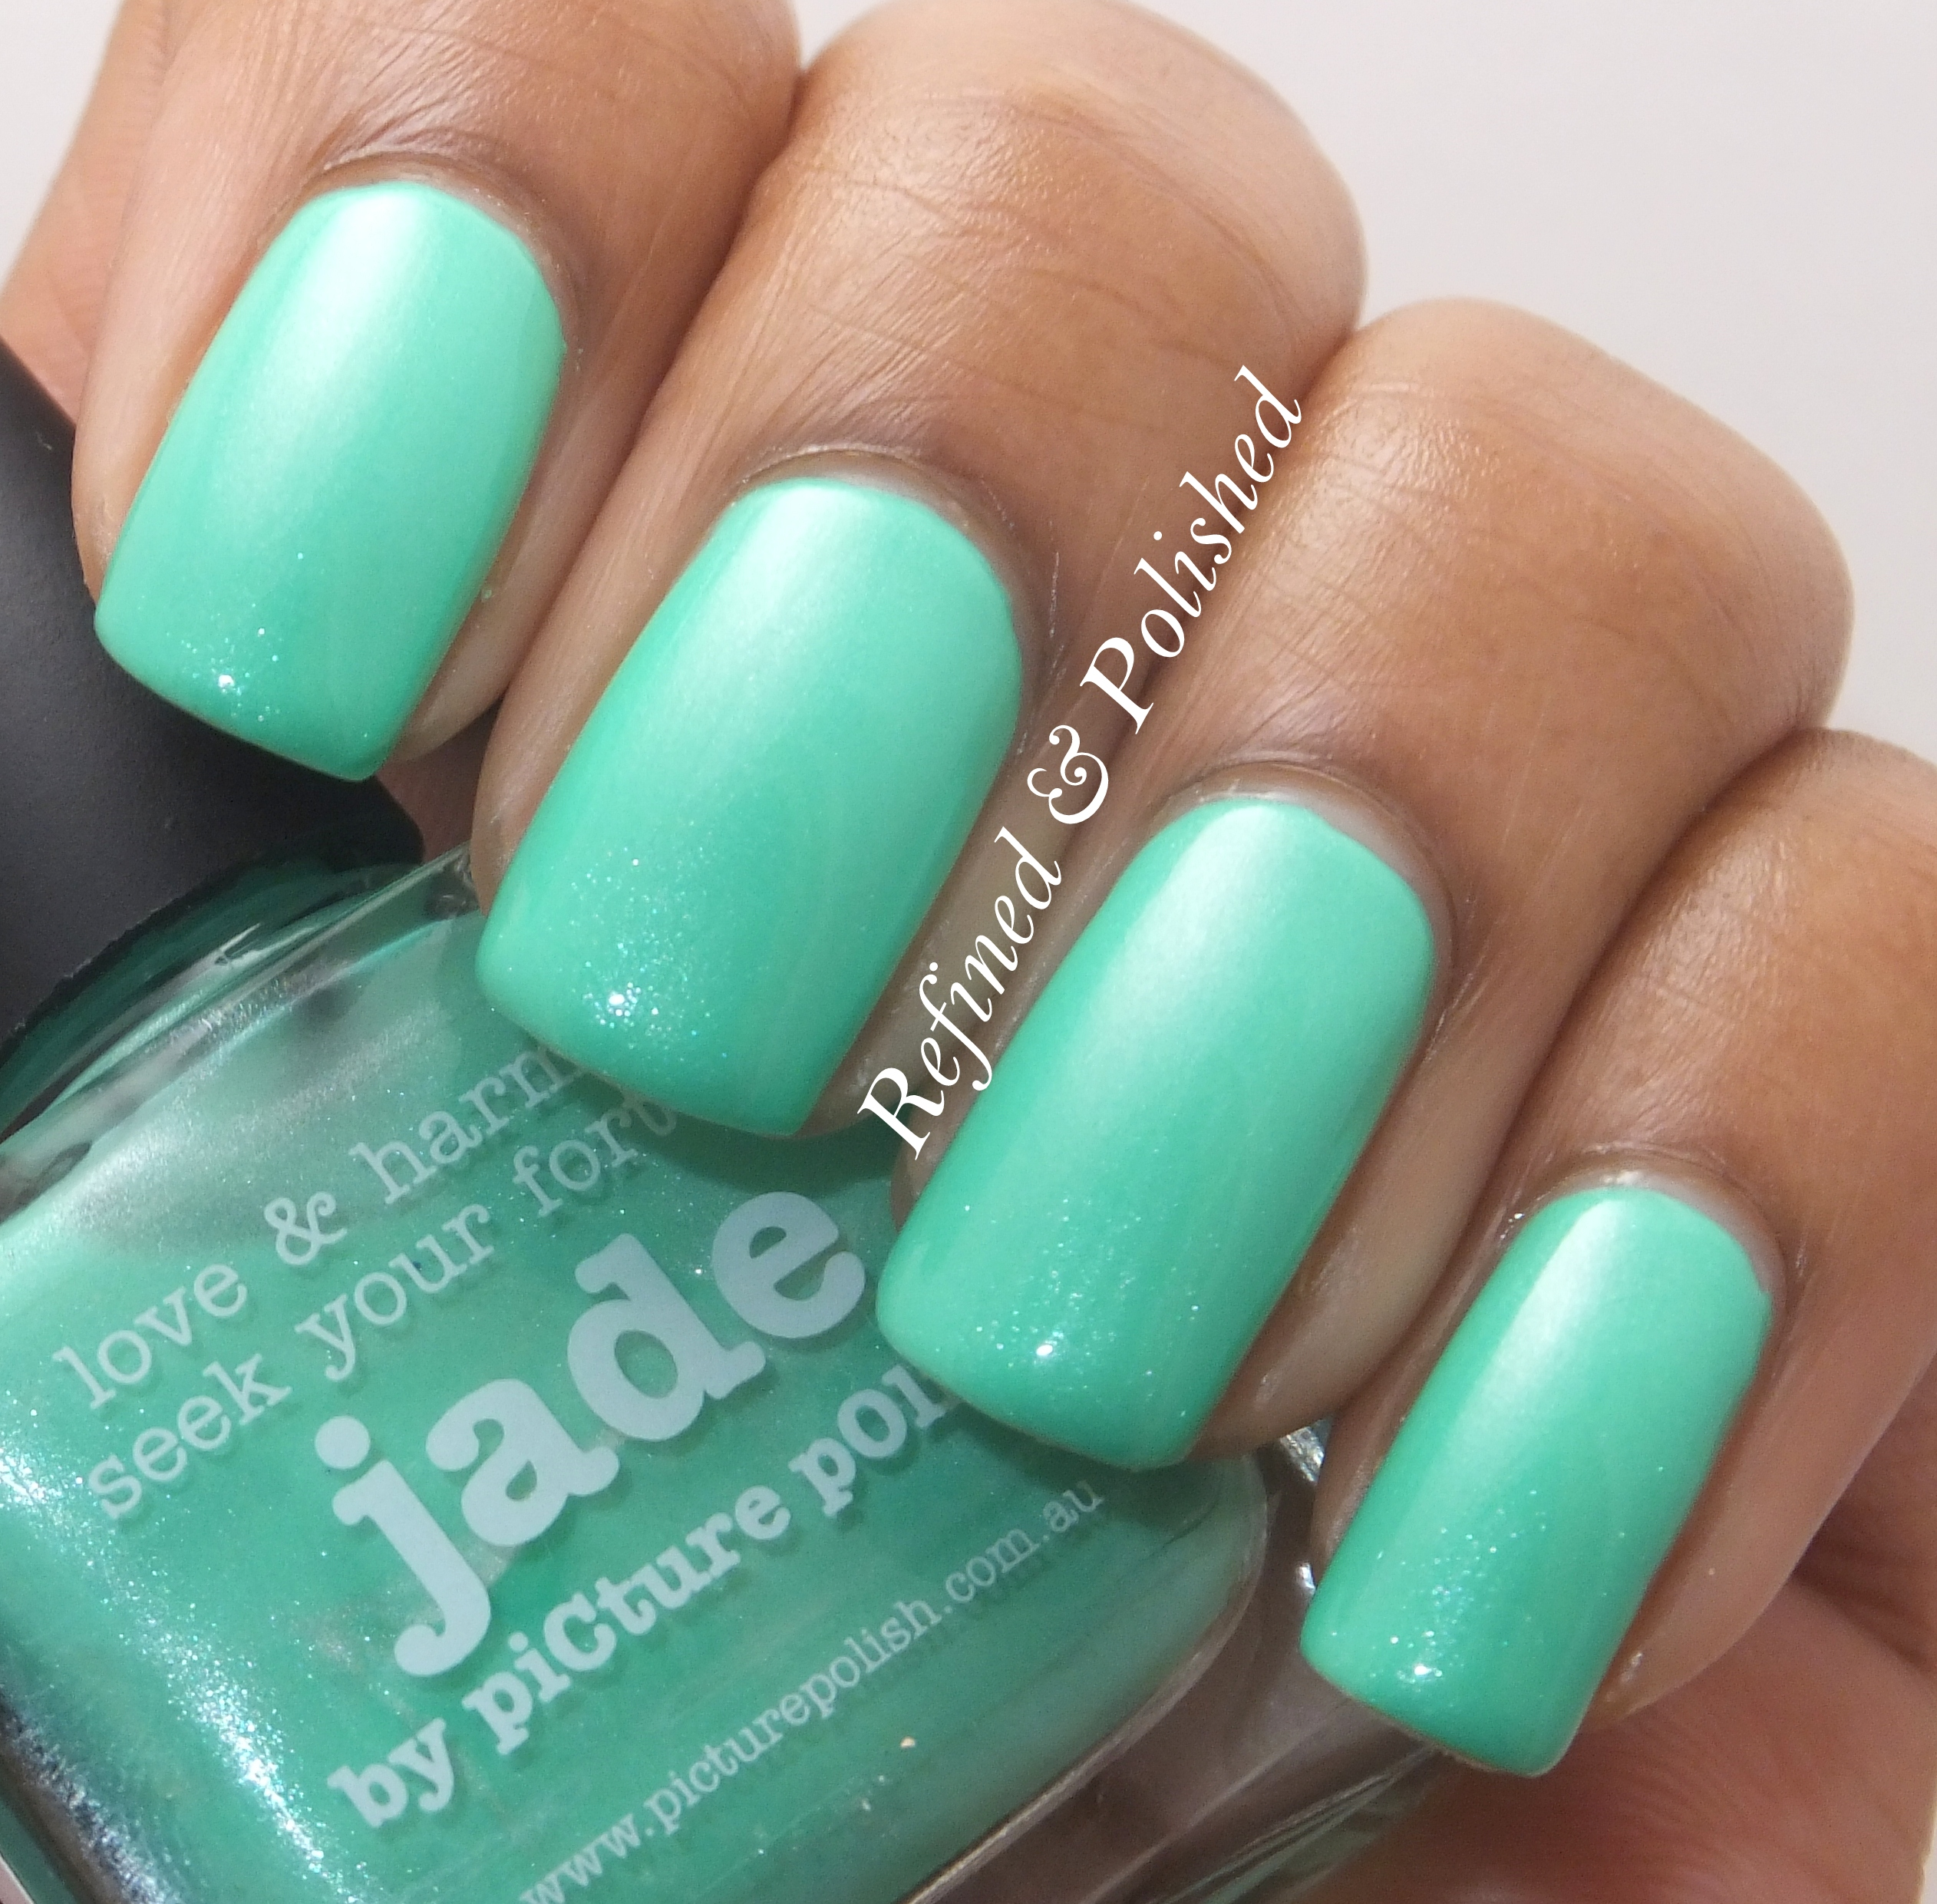 piCture pOlish Jade - Refined and Polished